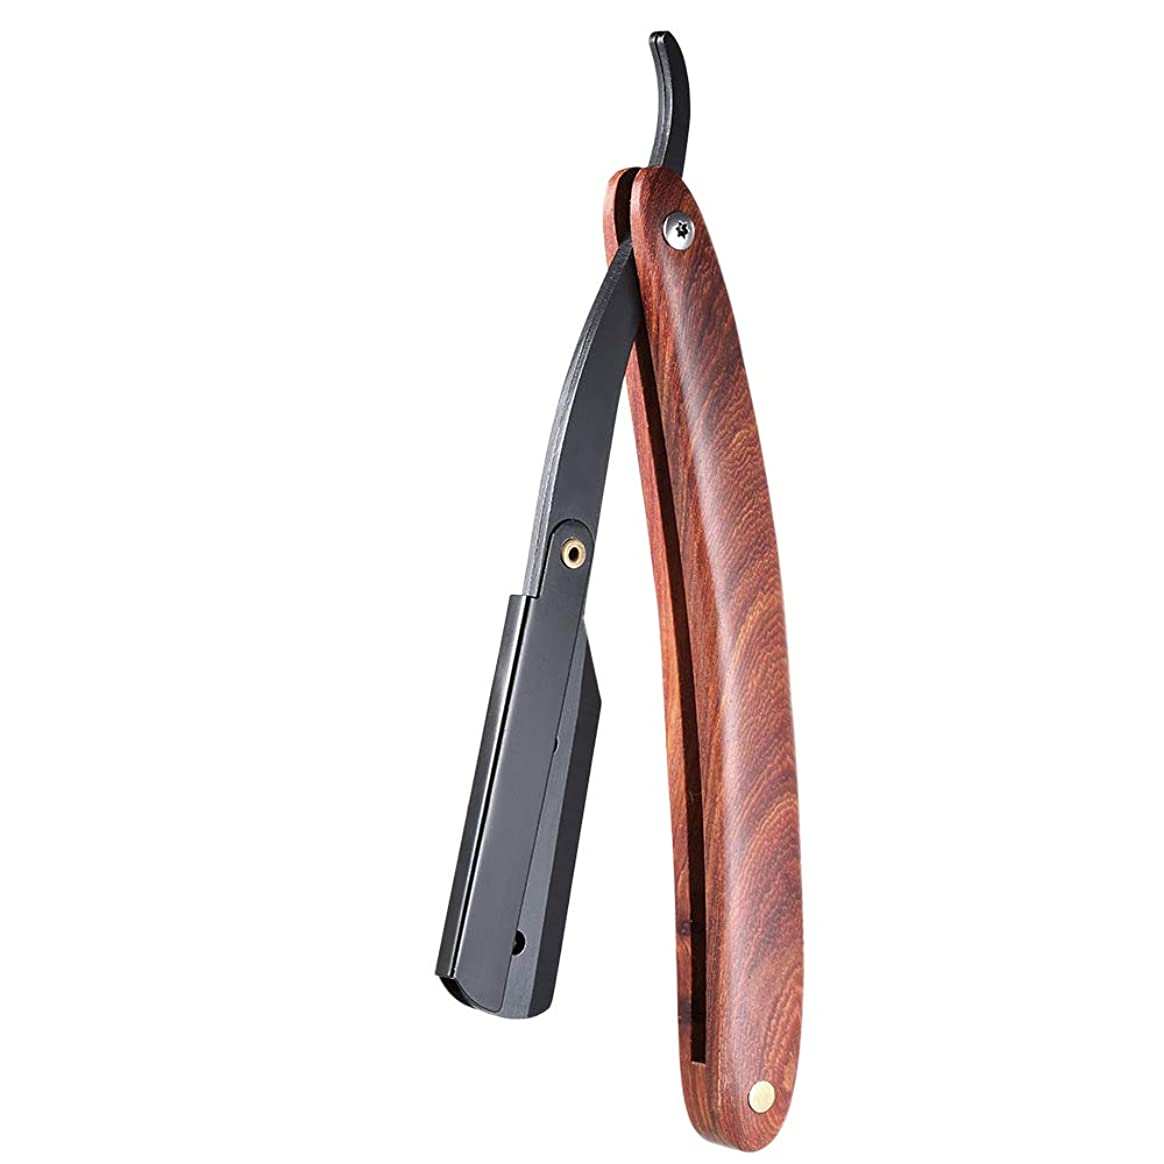 連結する解釈的食器棚Men Shaving Straight Edge Razor Stainless Steel Manual Razor Wooden Handle Folding Shaving Knife Shave Beard Cutter Pouch